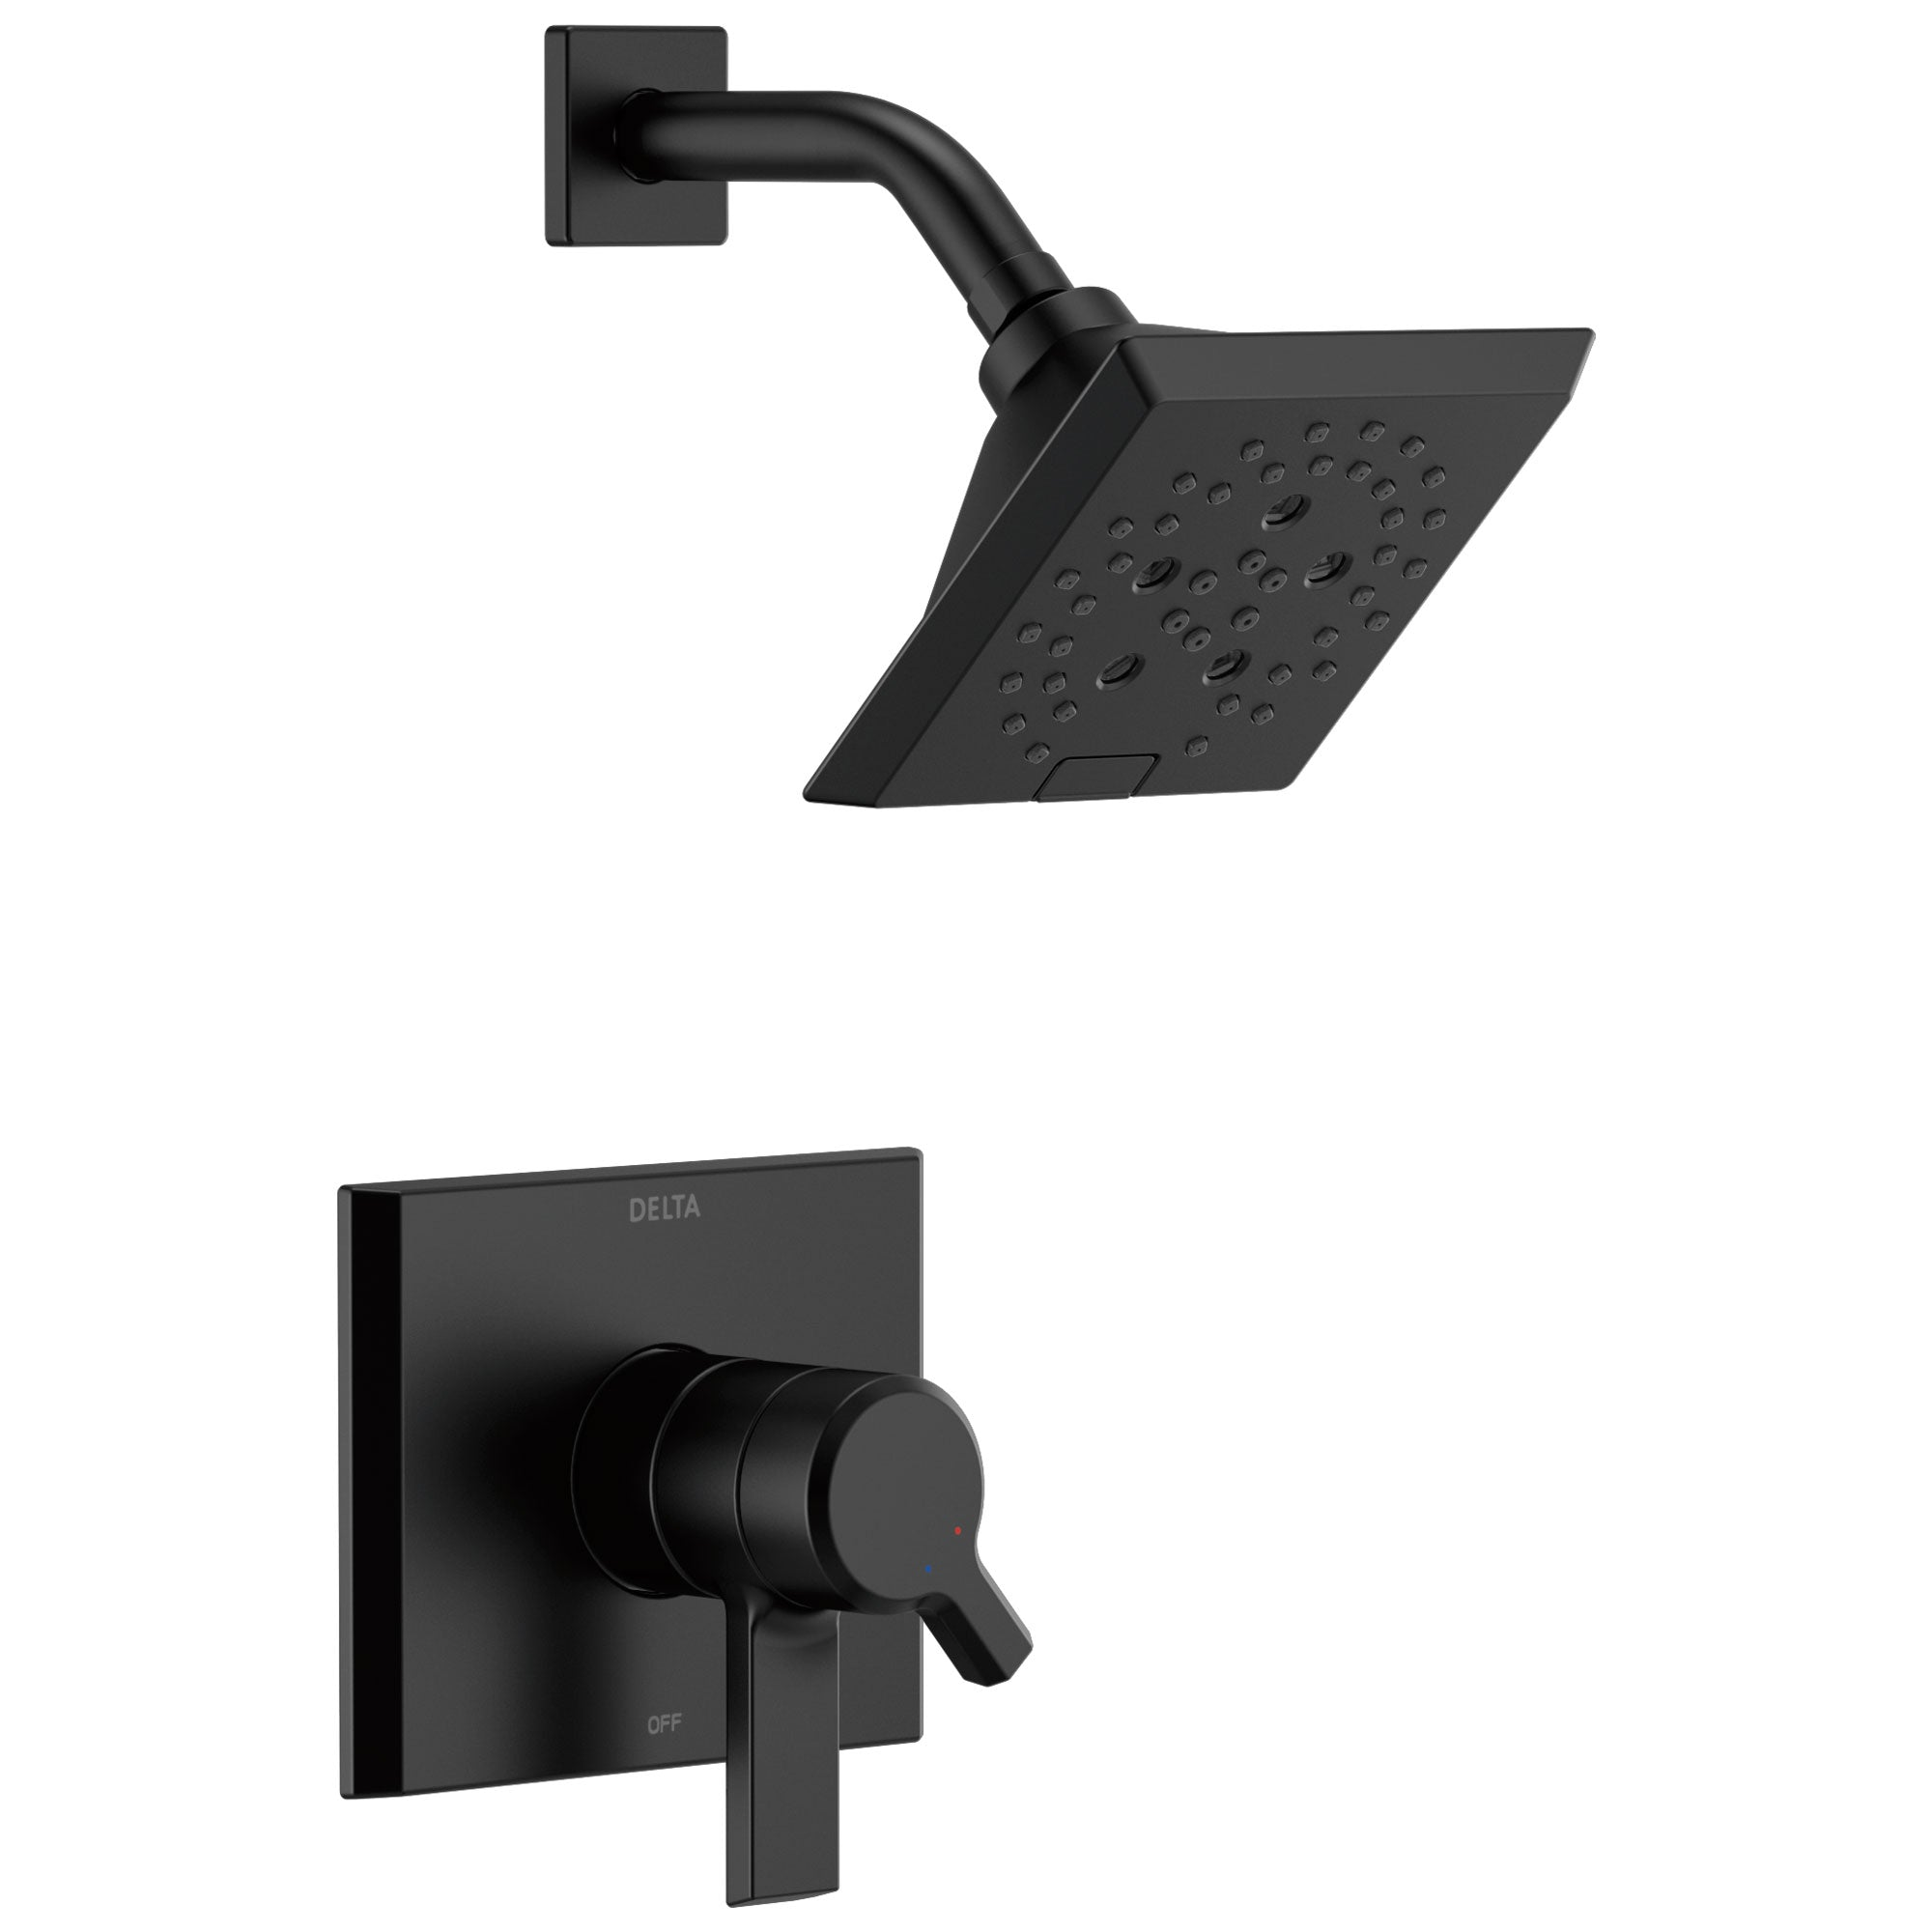 Delta Pivotal Modern Matte Black Finish H2Okinetic Shower only Faucet Includes 17 Series Cartridge, Handles, and Valve with Stops D3360V